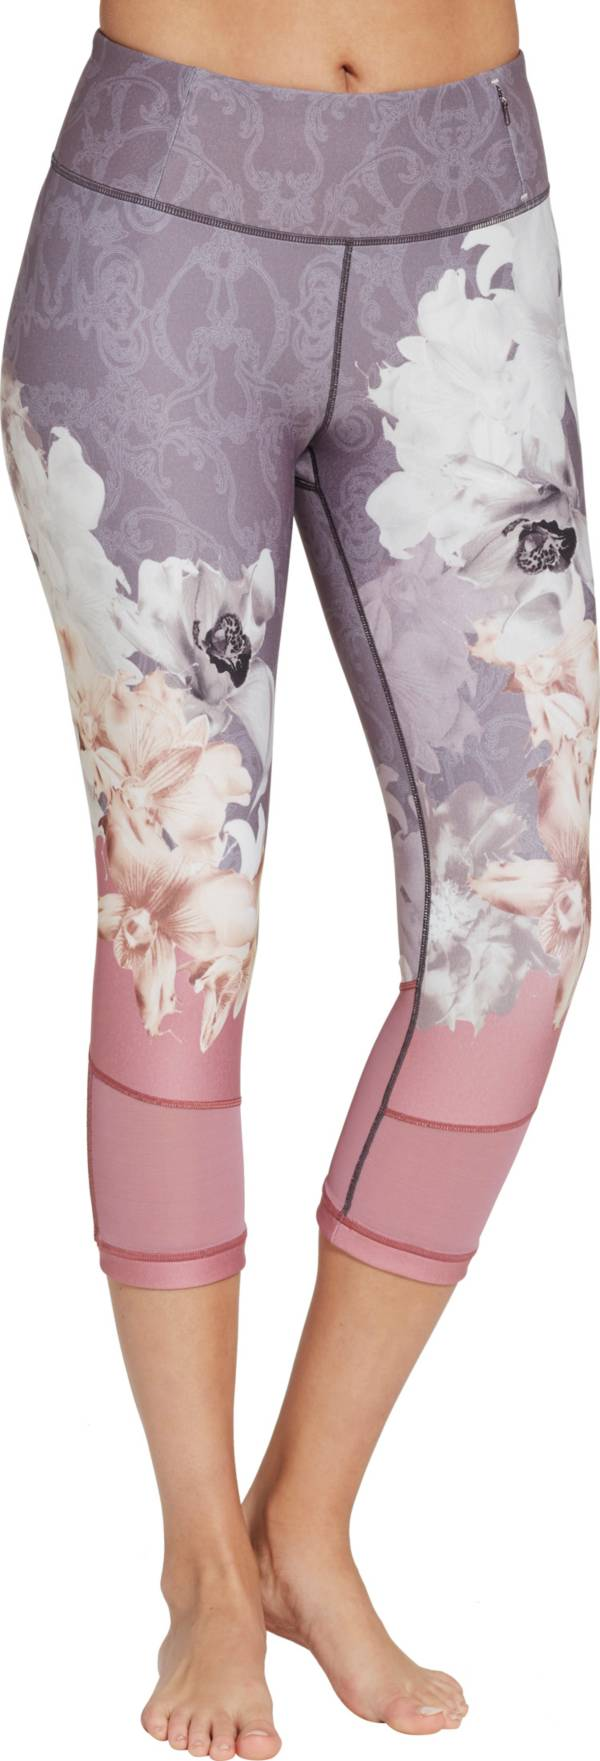 CALIA by Carrie Underwood Women's Printed Filament Capris product image